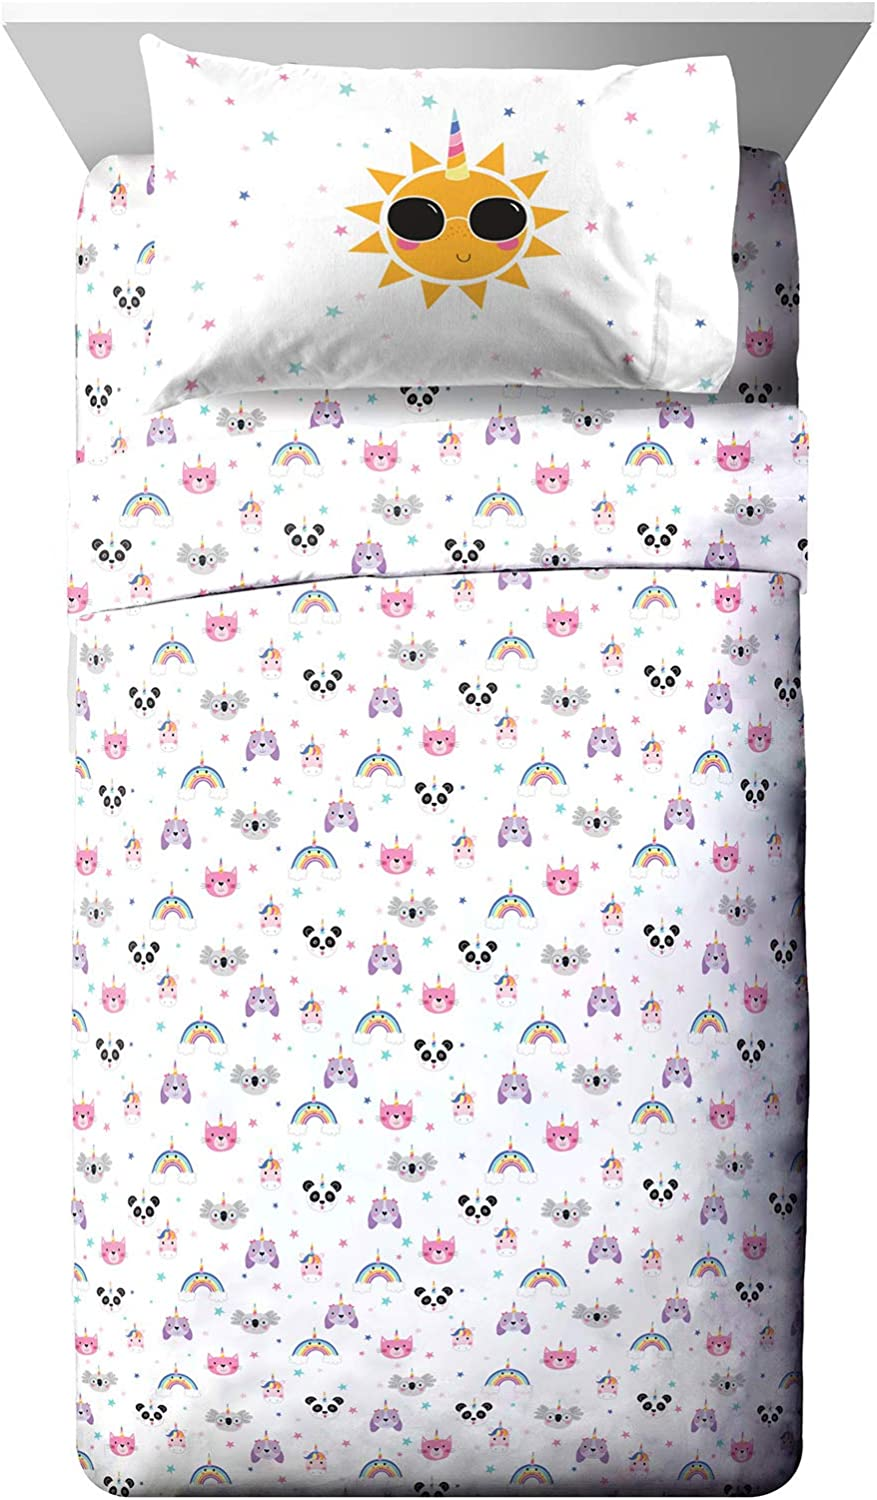 Jay Franco Trend Collector Unicorn Squad Full Sheet Set - 4 Piece Set Super Soft and Cozy Kid's Bedding - Fade Resistant Microfiber Sheets